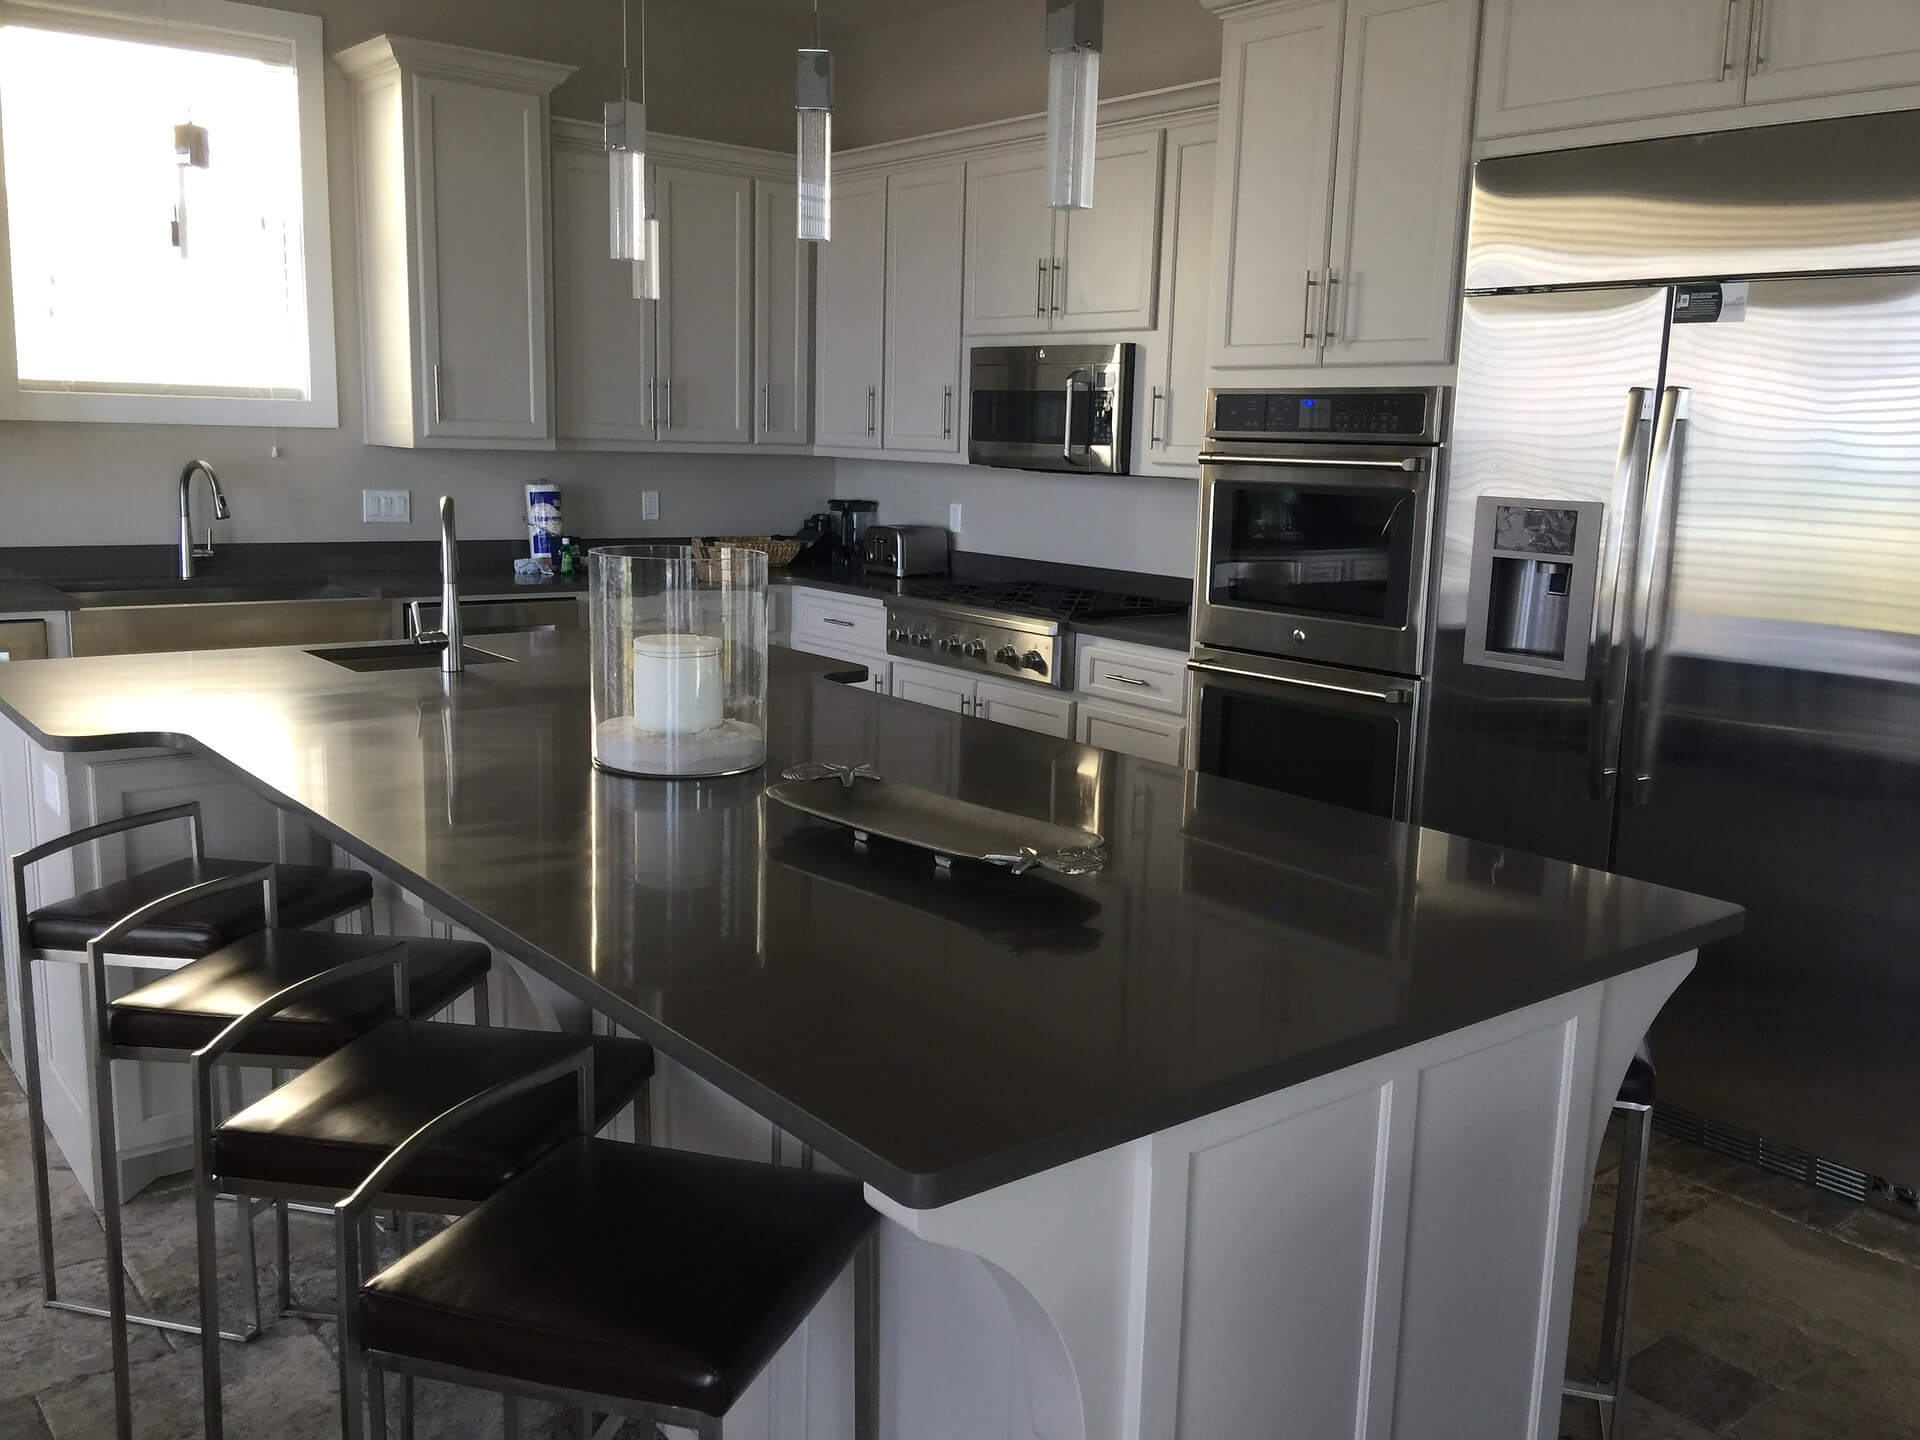 Complete Kitchen Renovations - SoFlo Kitchen Remodeling & Custom Cabinet Installation - backsplashes, flooring, countertops